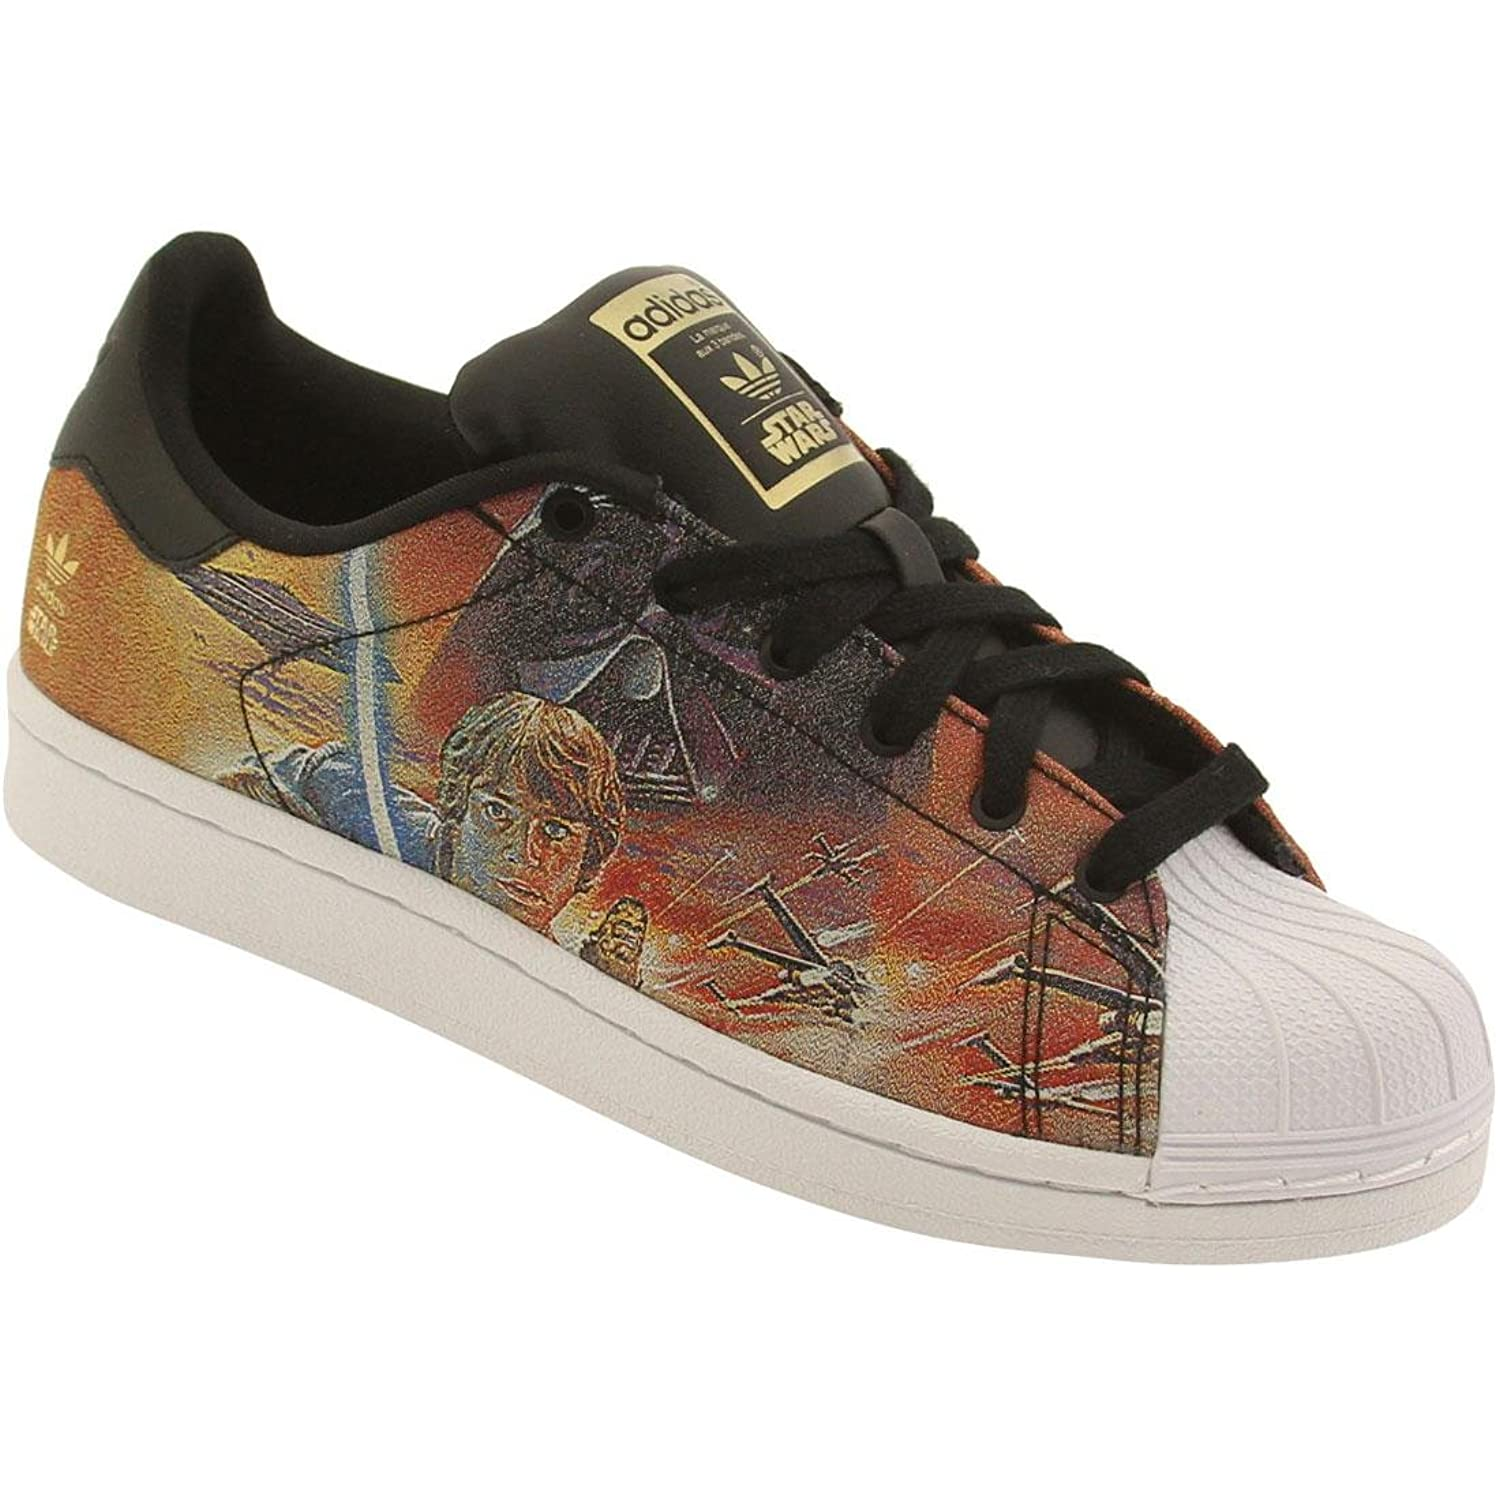 Amazon.com | Adidas Superstar (Star Wars) (Kids) - Black / White, 6 M US | Sneakers